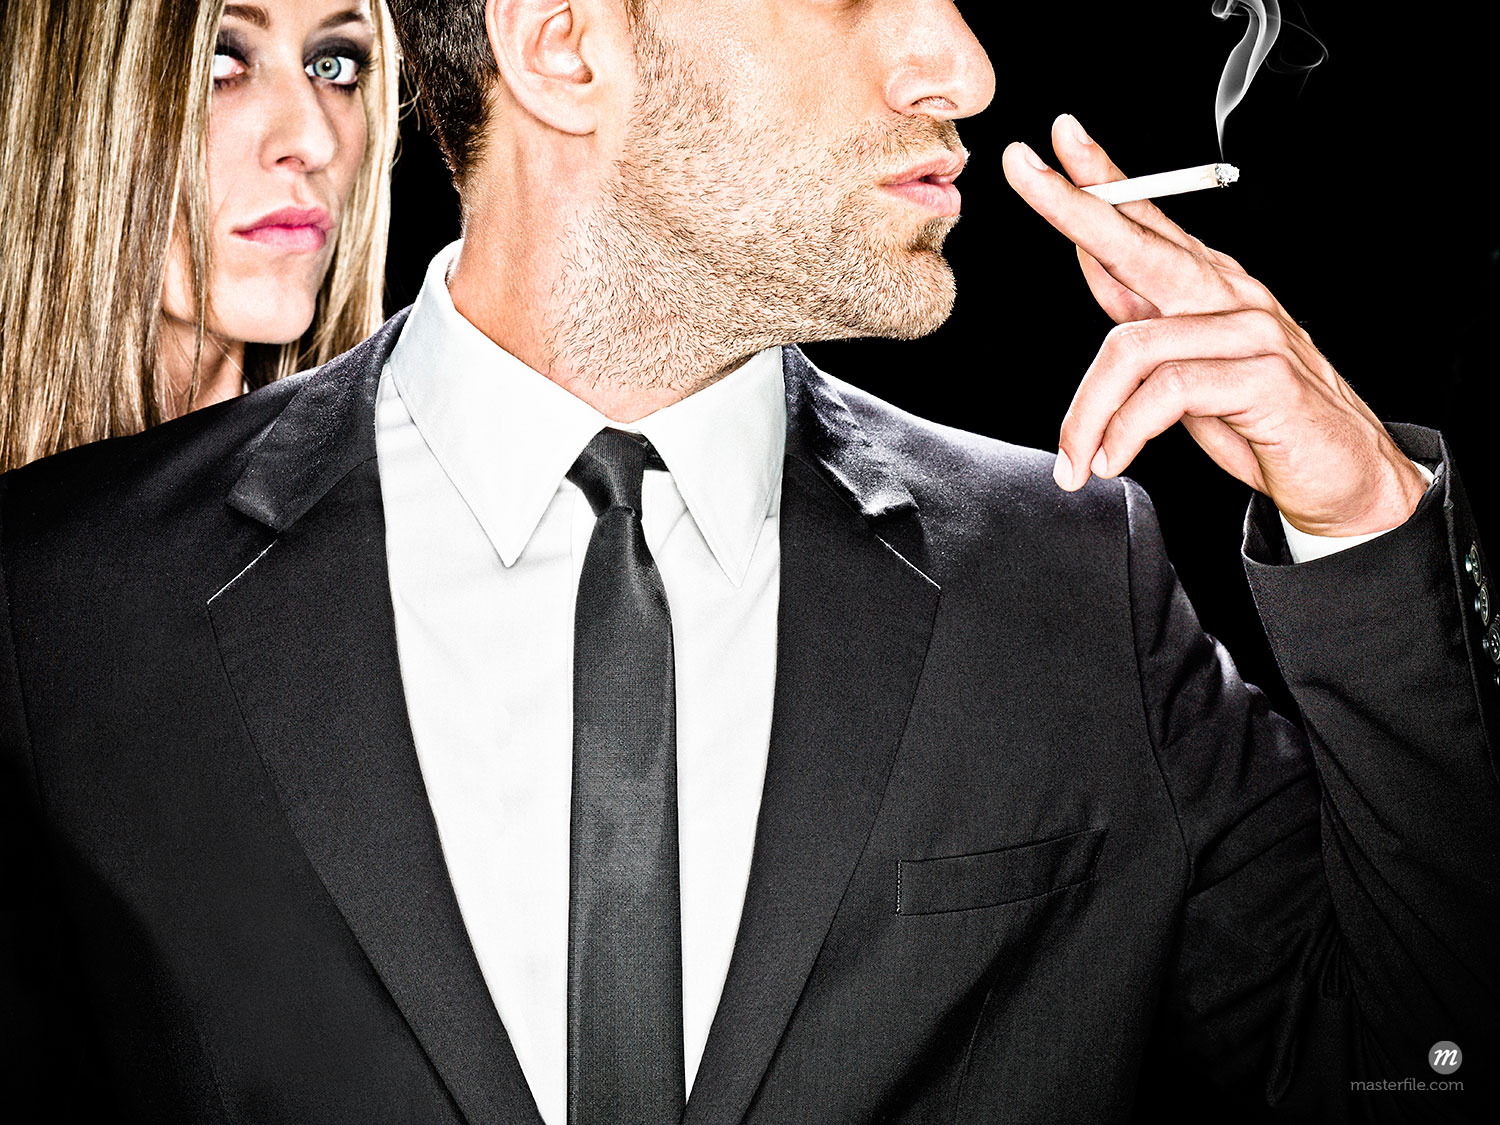 Close-up of man in black suit against a black background smoking a cigarette, with head of serious blonde woman looking over shoulder  ©  Dana Hursey / Masterfile